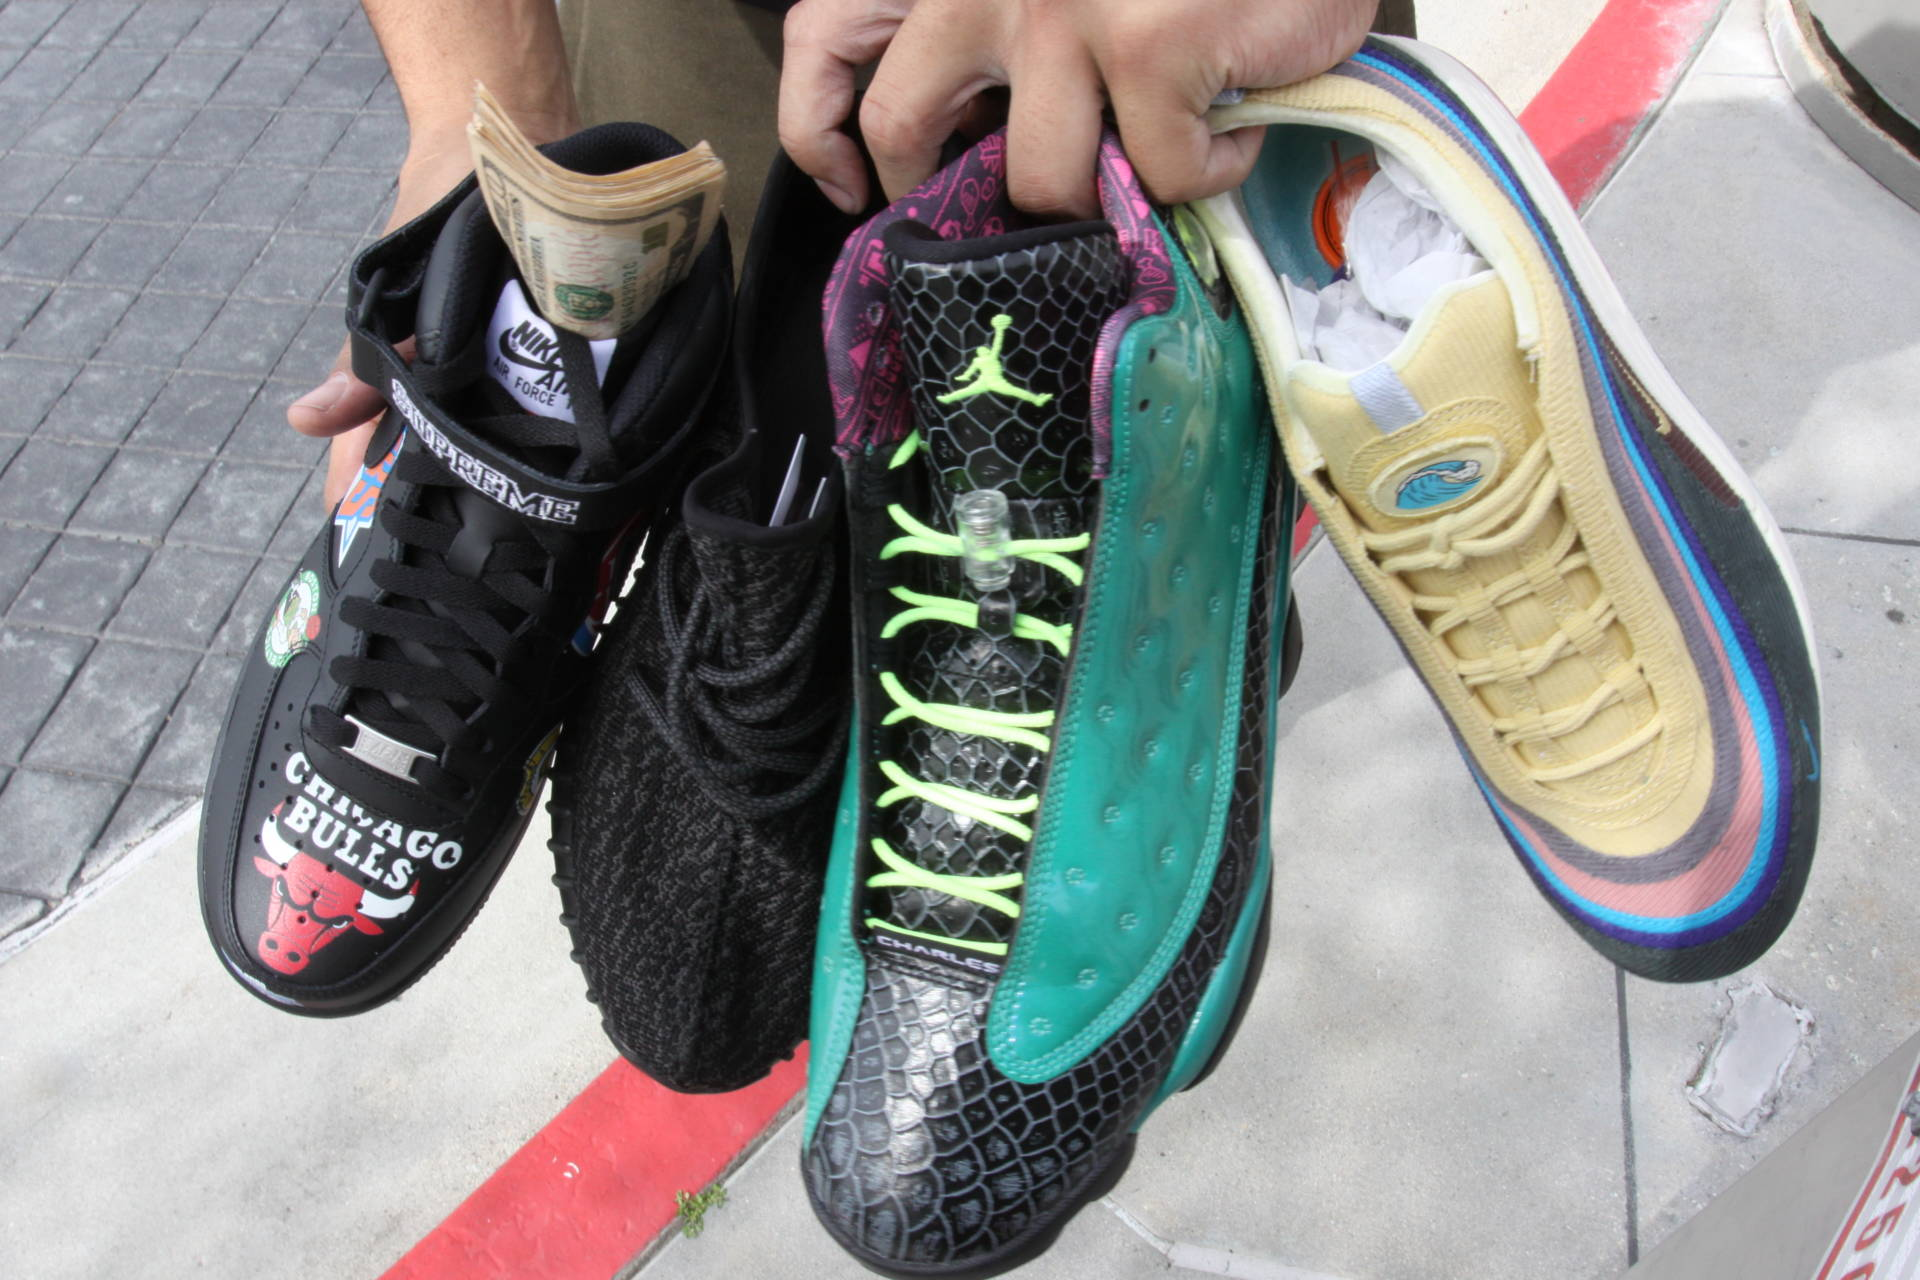 Attendees began to hawk shoes like these four sneakers while they were waiting in line for the doors to open at Sneaker Con on Saturday, March 31, 2018.